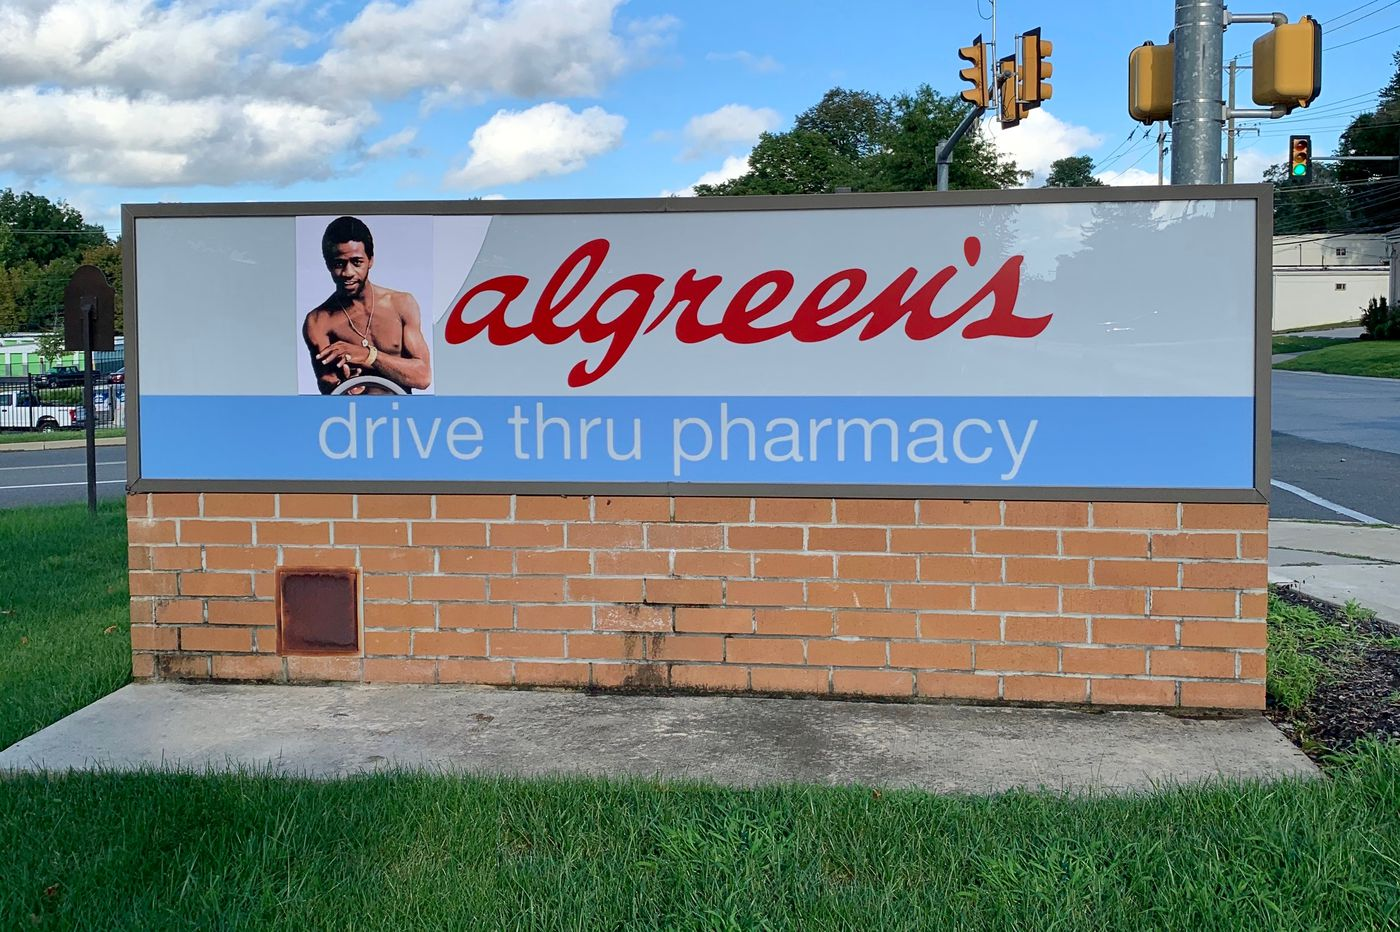 A street artist brought 'Love and Happiness' to a West Chester Walgreens sign